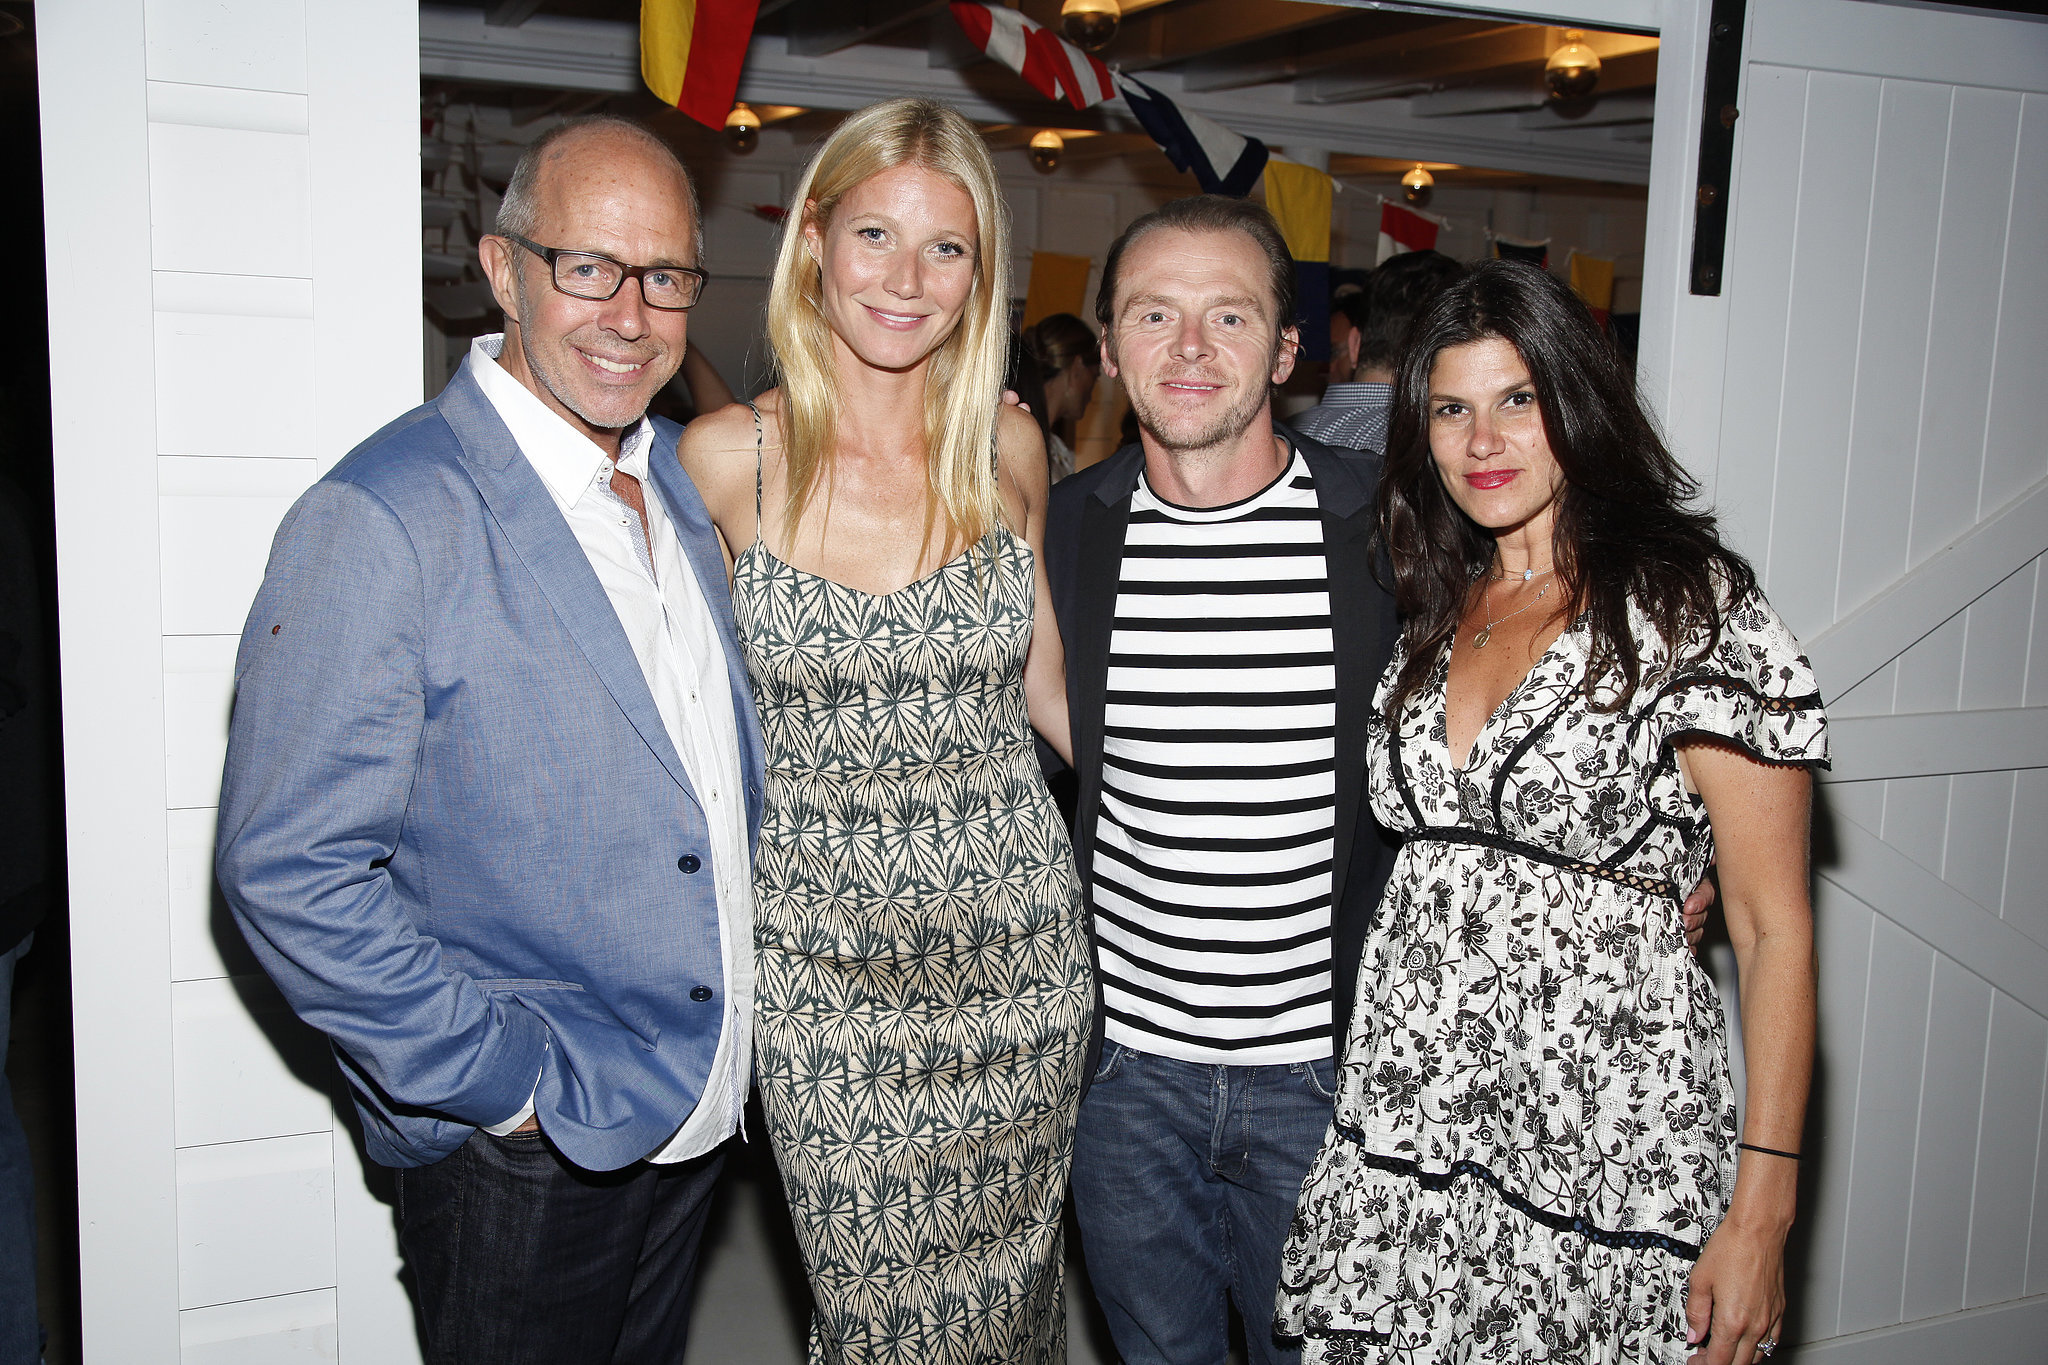 What's Going On With Gwyneth Paltrow and Chris Martin?